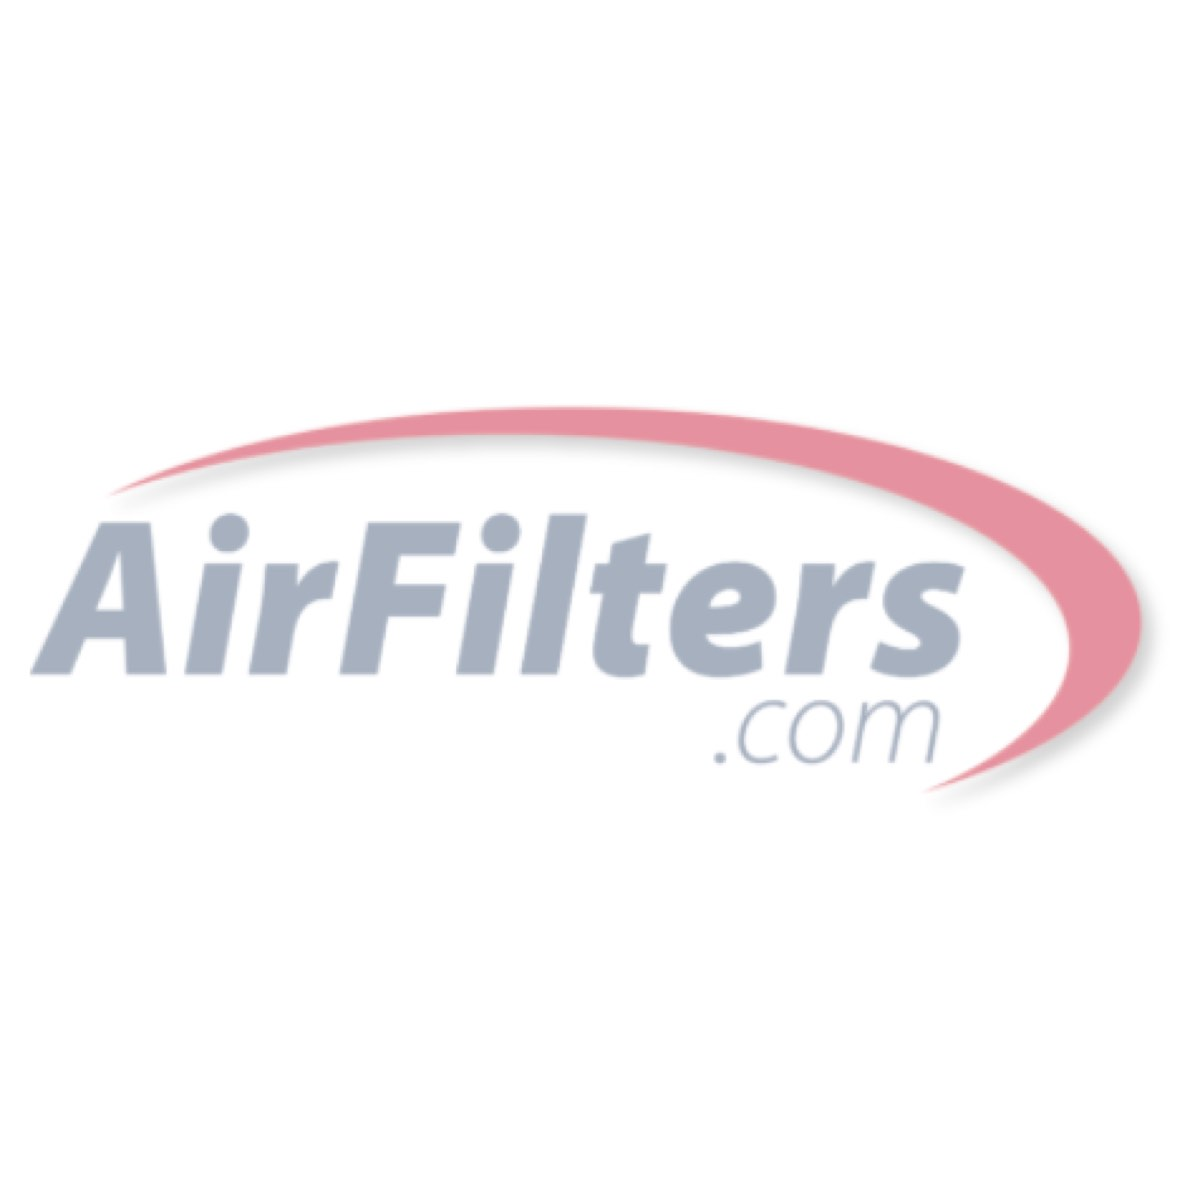 16x25x5 (15.38 x 25.5 x 5.25) Carrier® Filters by Accumulair®